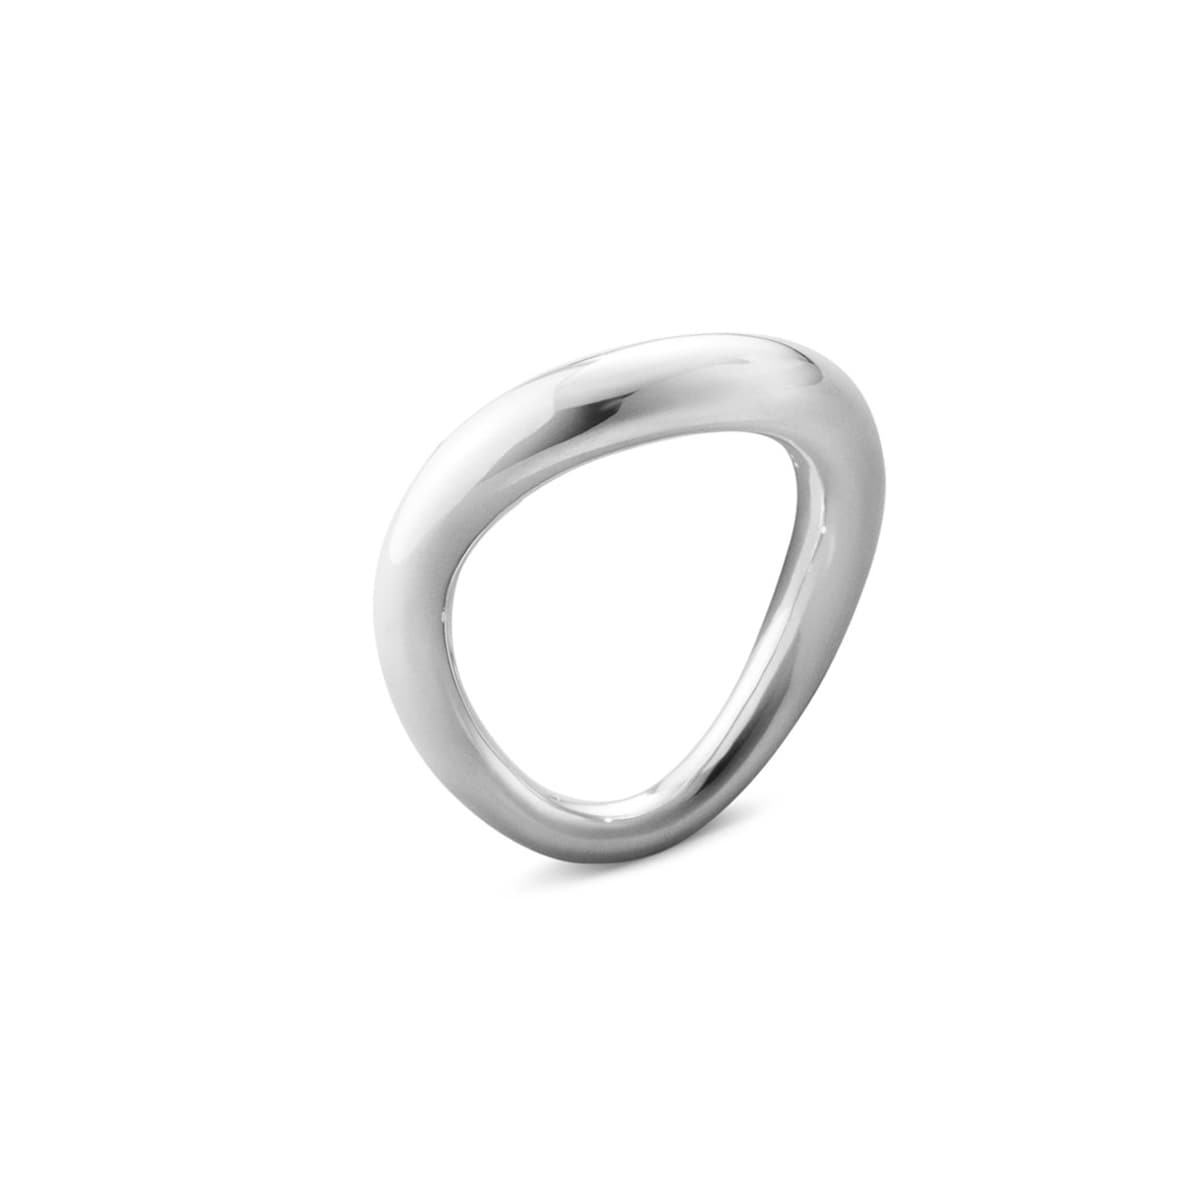 Georg_Jensen_10013245_OFFSPRING_RING_433__Hos_Jarl_Sandin